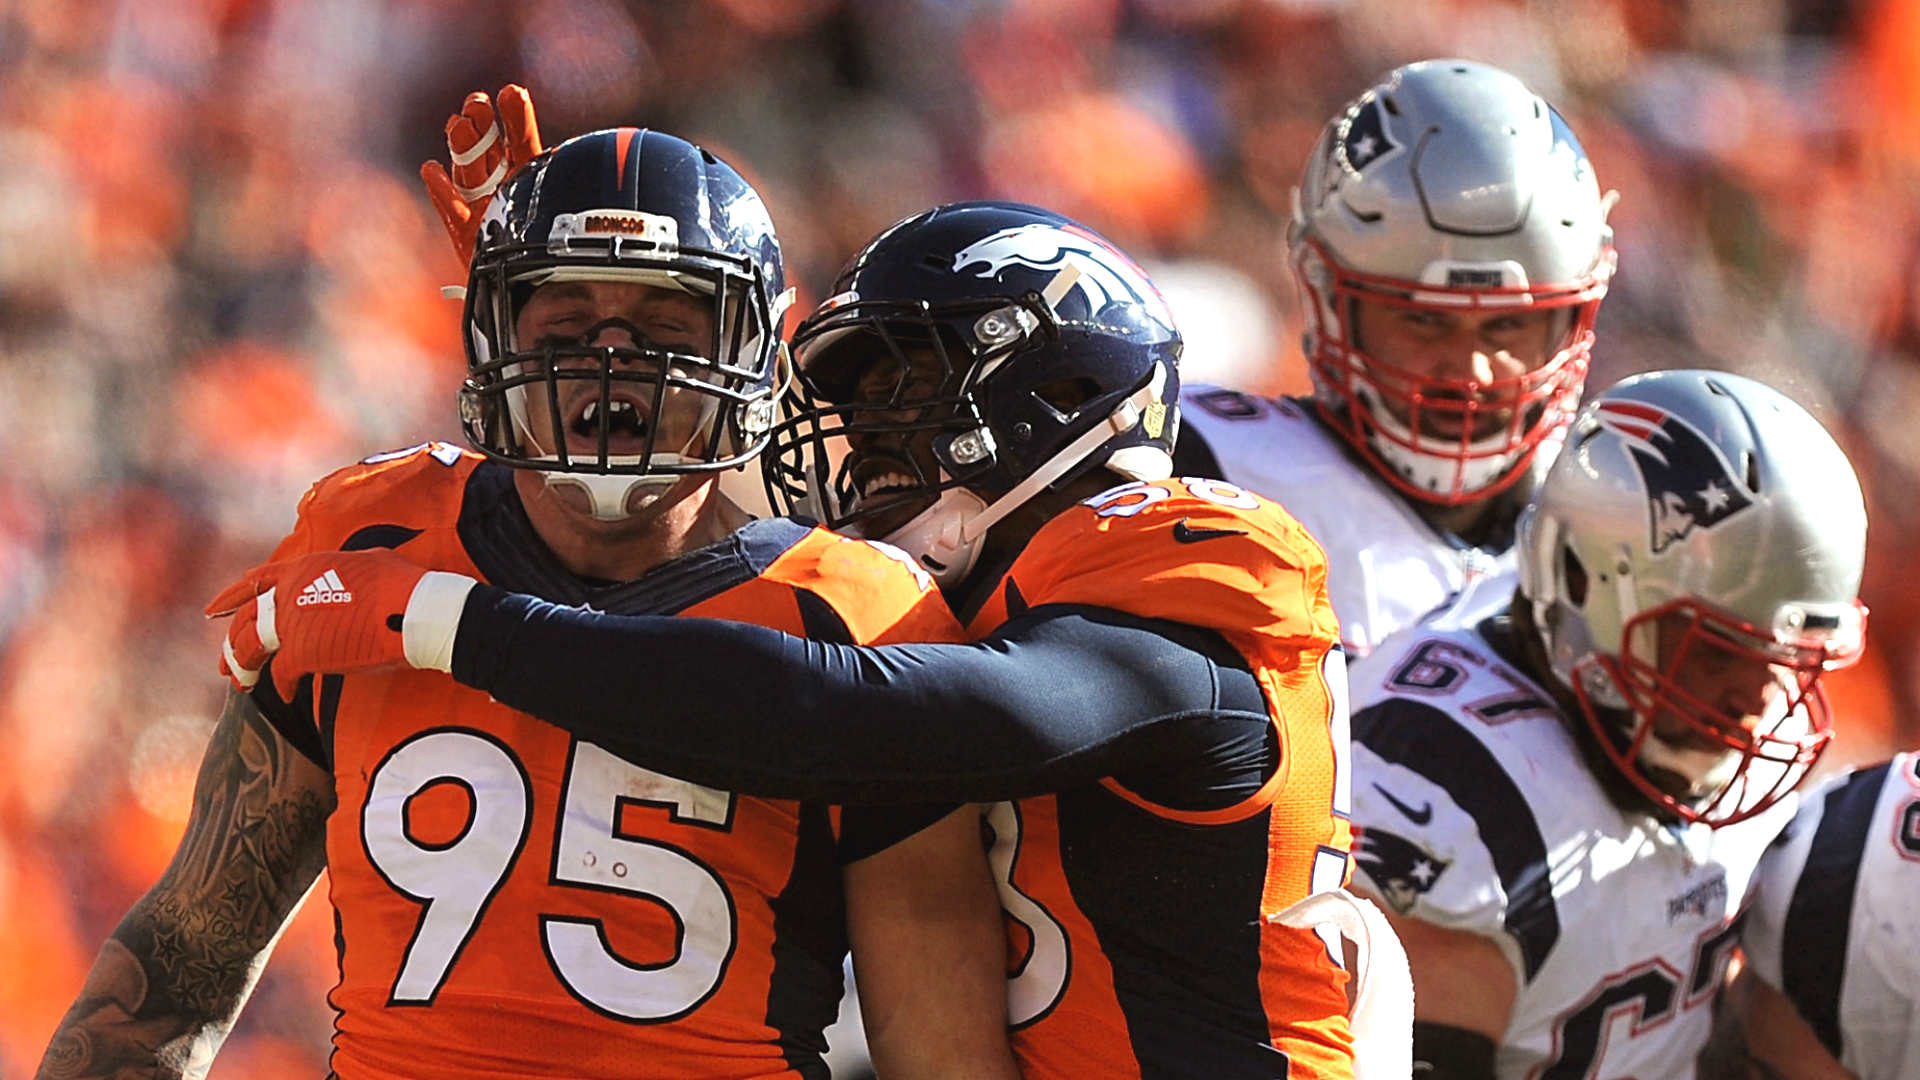 Broncos defense dominates for 17 9 halftime lead over Patriots